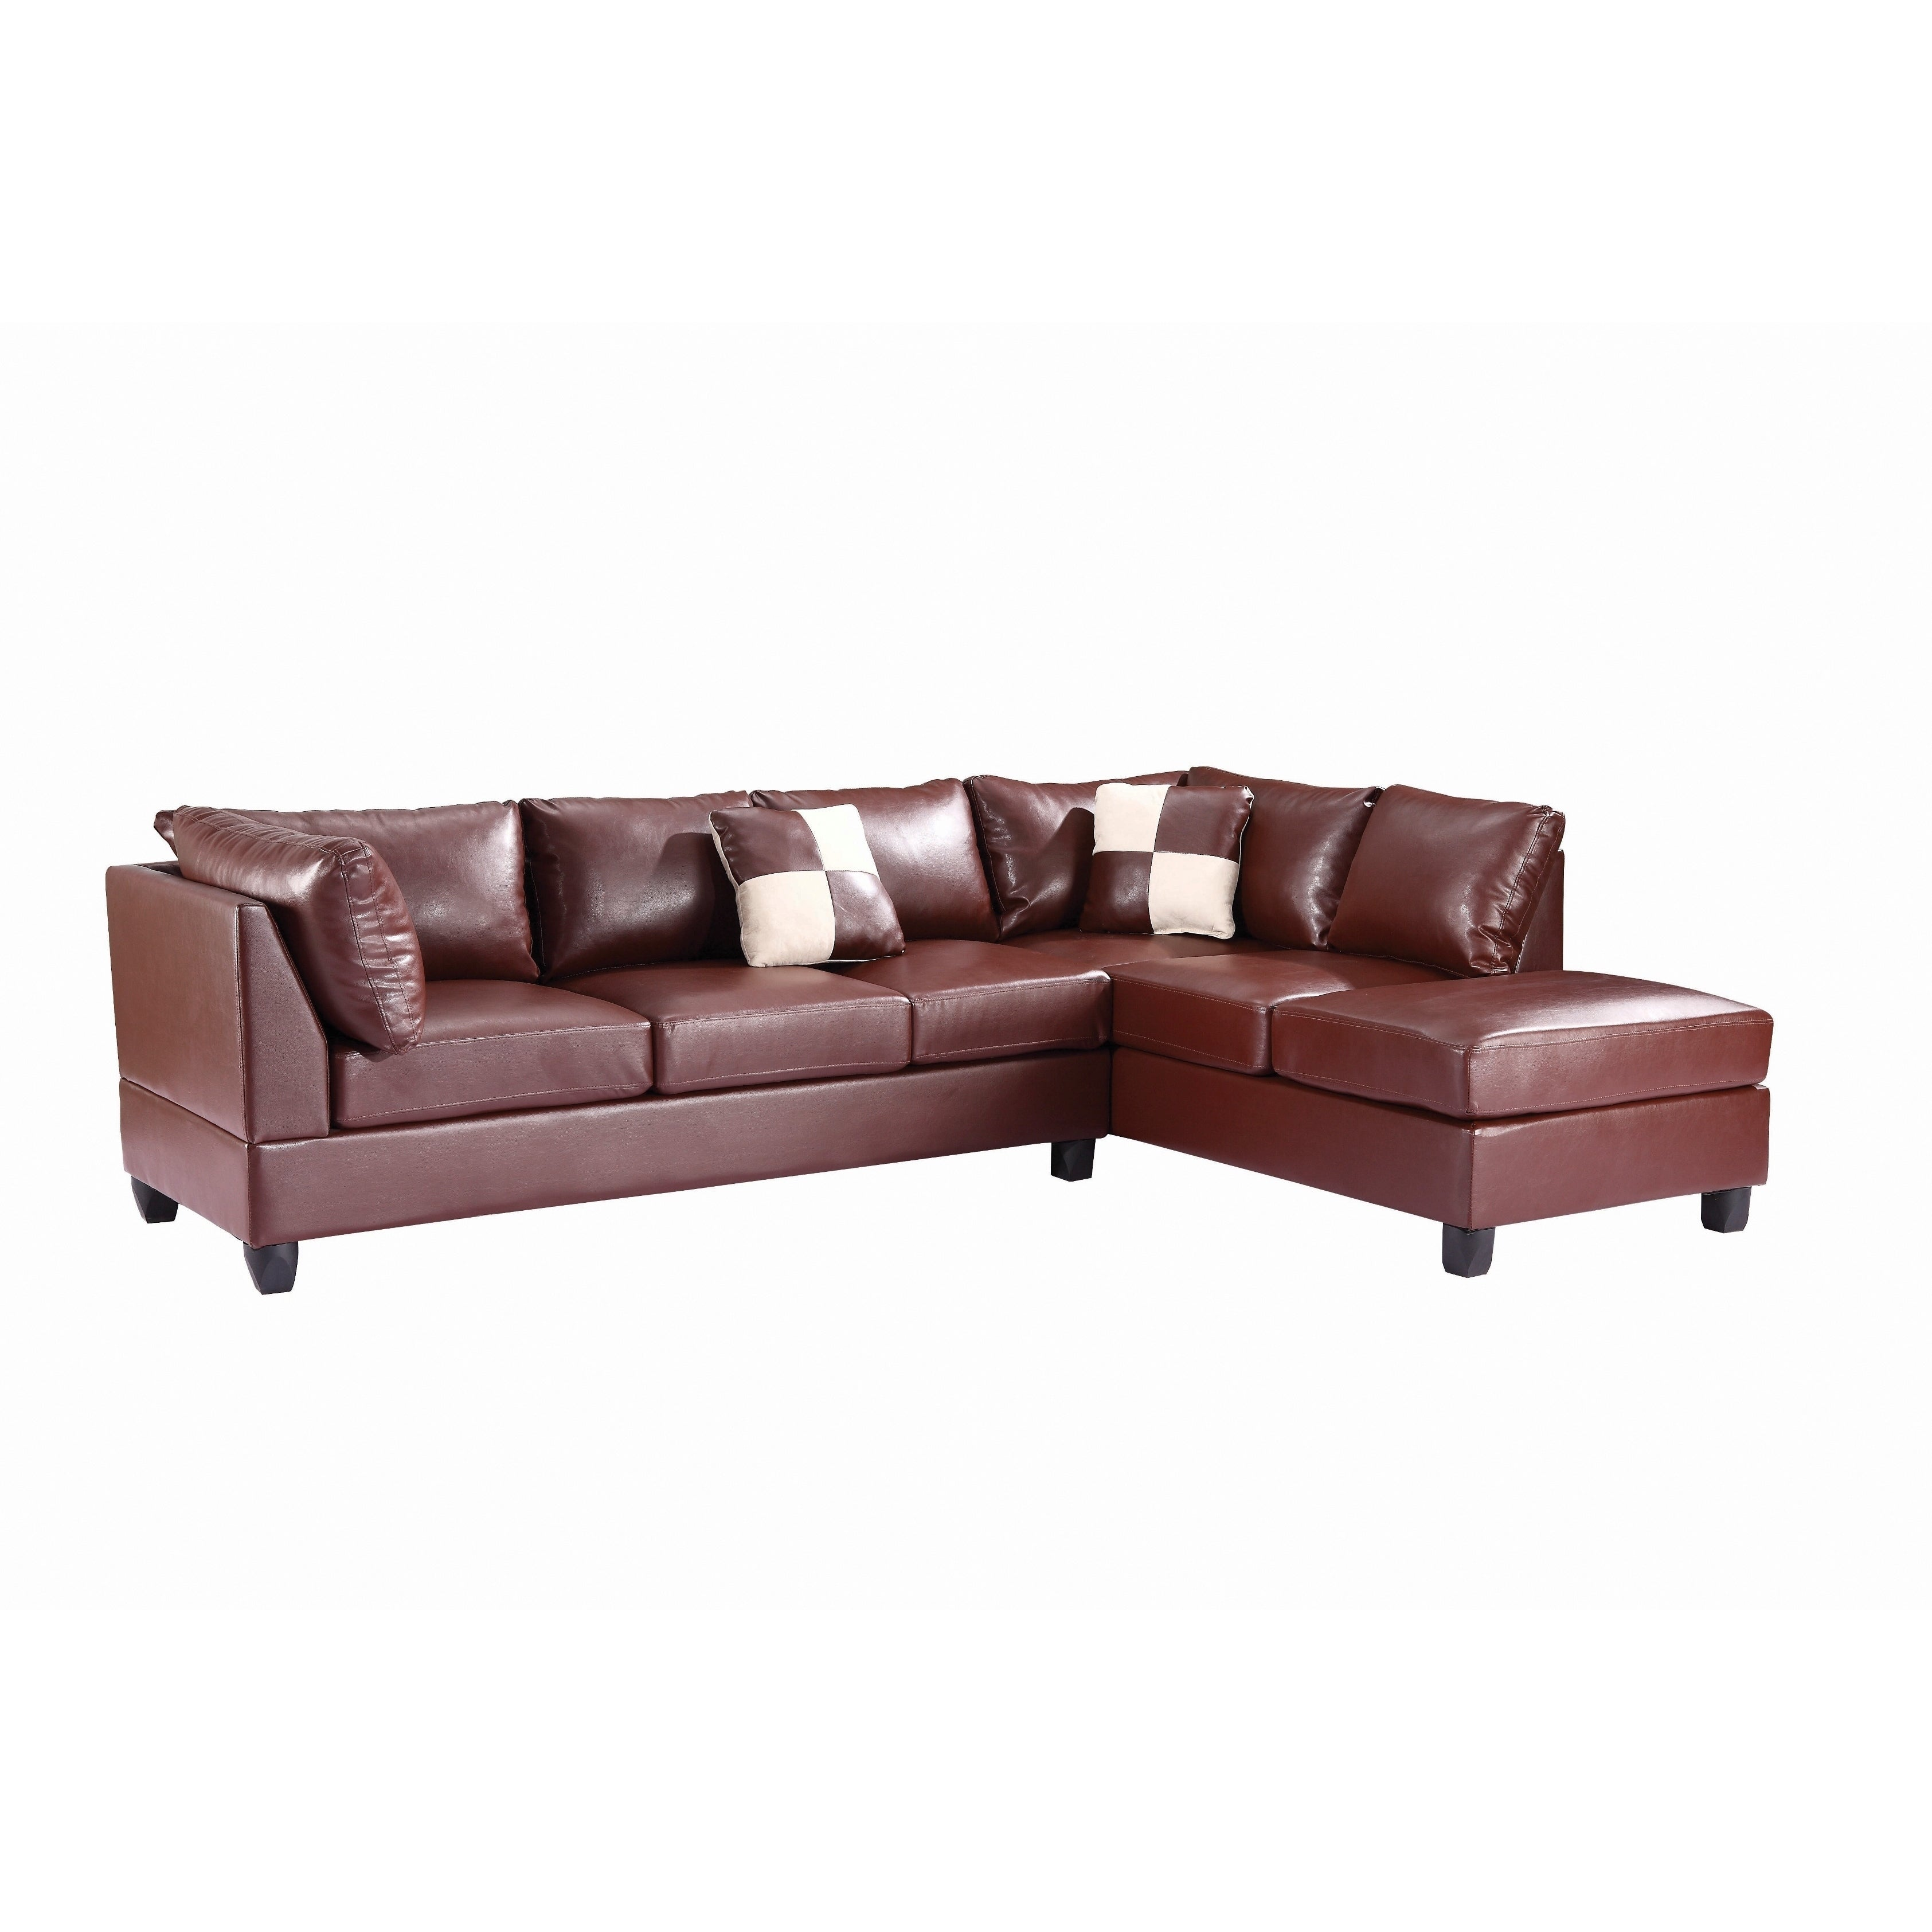 Attirant Shop LYKE Home Contemporary Leather Look PU Reversible Sectional Sofa   On  Sale   Free Shipping Today   Overstock.com   15891942